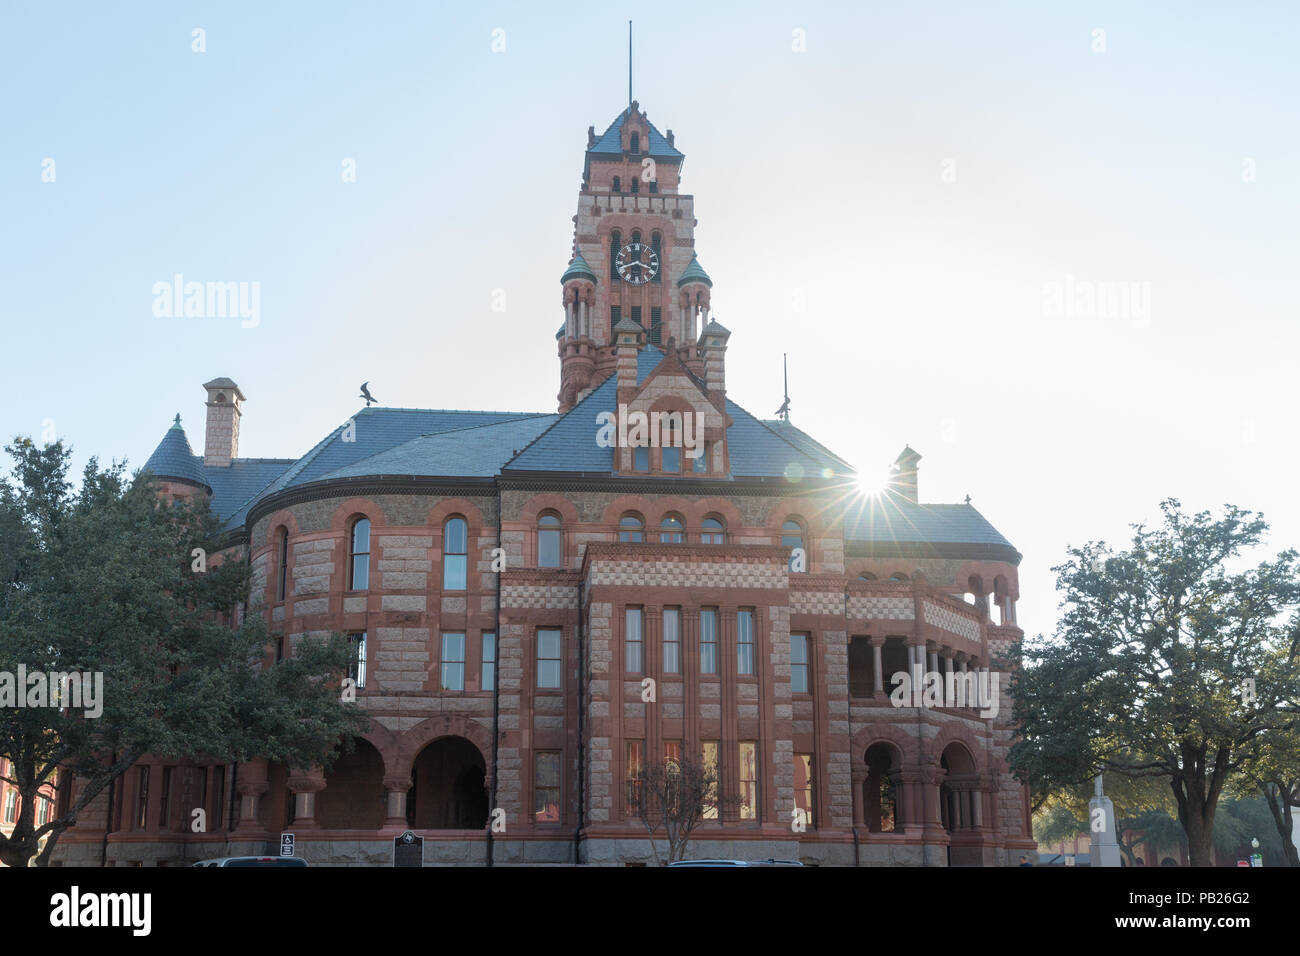 Ellis county courthouse in Waxahachie Texas with sunburst. Constructed in 1897 and designed by Architect J. Riely Gordon in Romanesque Revival Style. - Stock Image